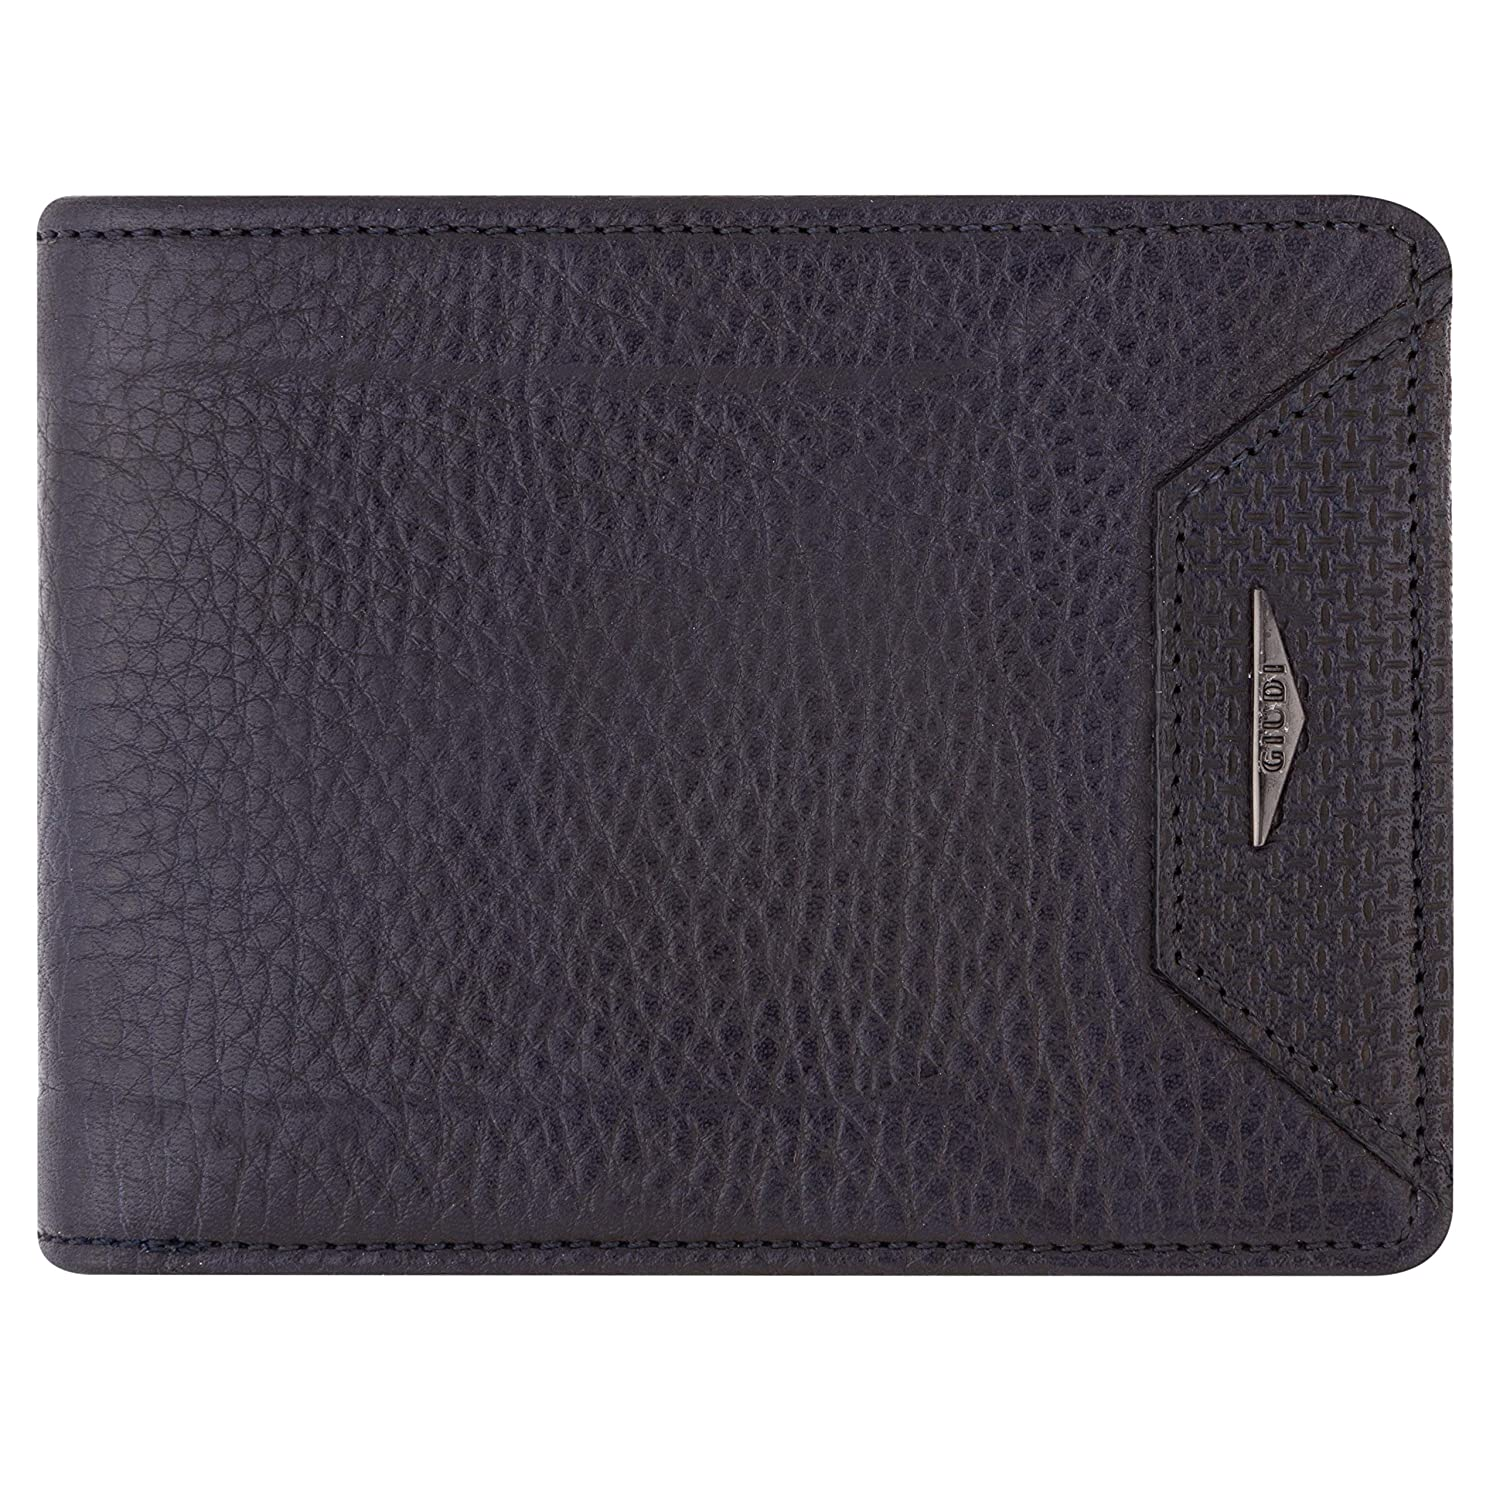 ID Window 2 Cash Pockets Made in Italy Excellent Gift in Attractive Packaging 9 Business Credit Card Holder Giudi Deluxe Genuine Leather Comfortable Bifold Men/'s Wallet